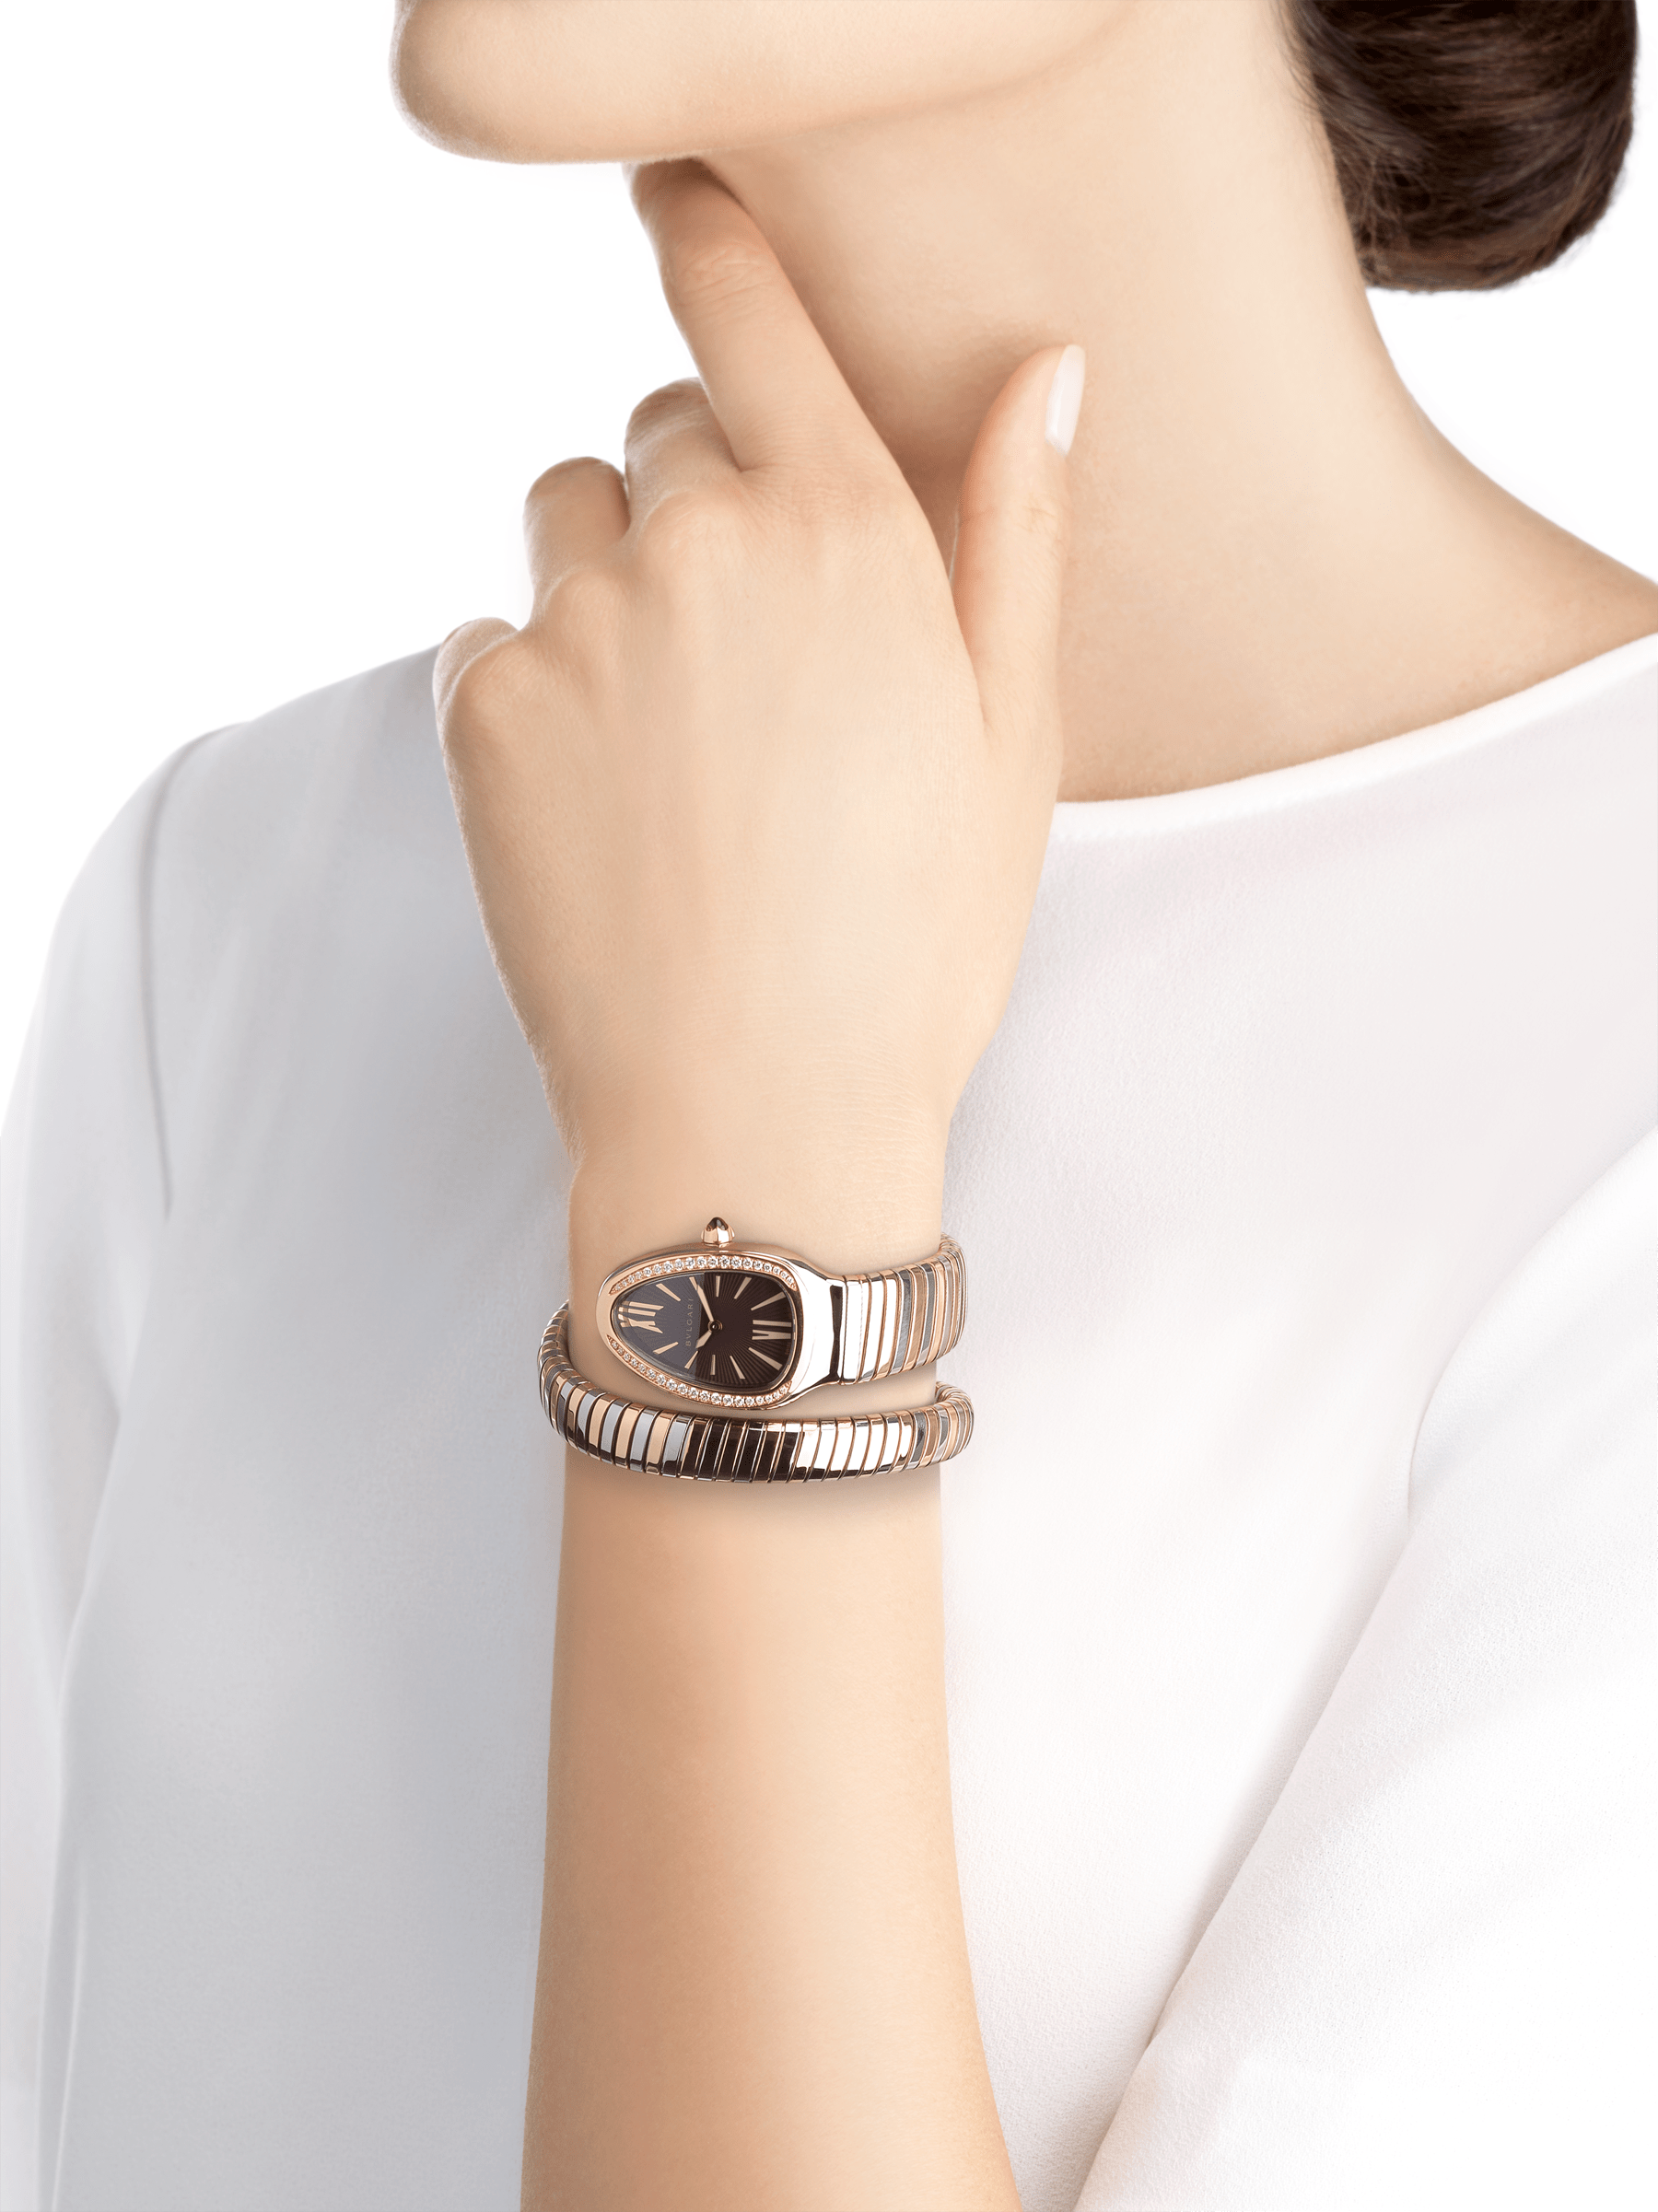 Serpenti Tubogas single spiral watch with stainless steel case, 18 kt rose gold bezel set with brilliant cut diamonds, violet lacquered dial, 18 kt rose gold and stainless steel bracelet. 102493 image 4